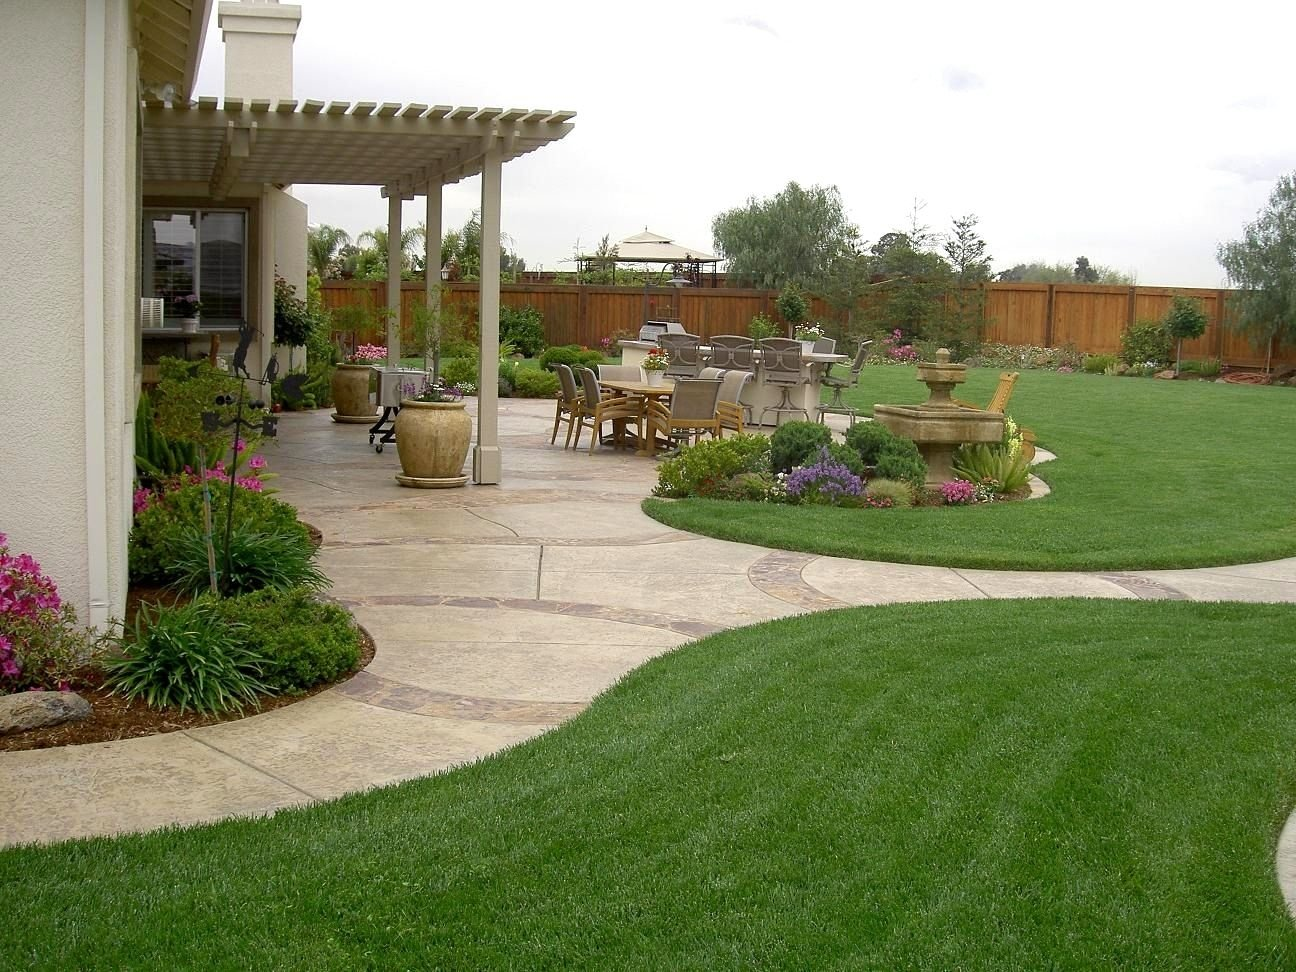 10 Stunning Backyard Landscaping Ideas For Dogs landscaping ideas for backyard for dogs the garden inspirations 2020